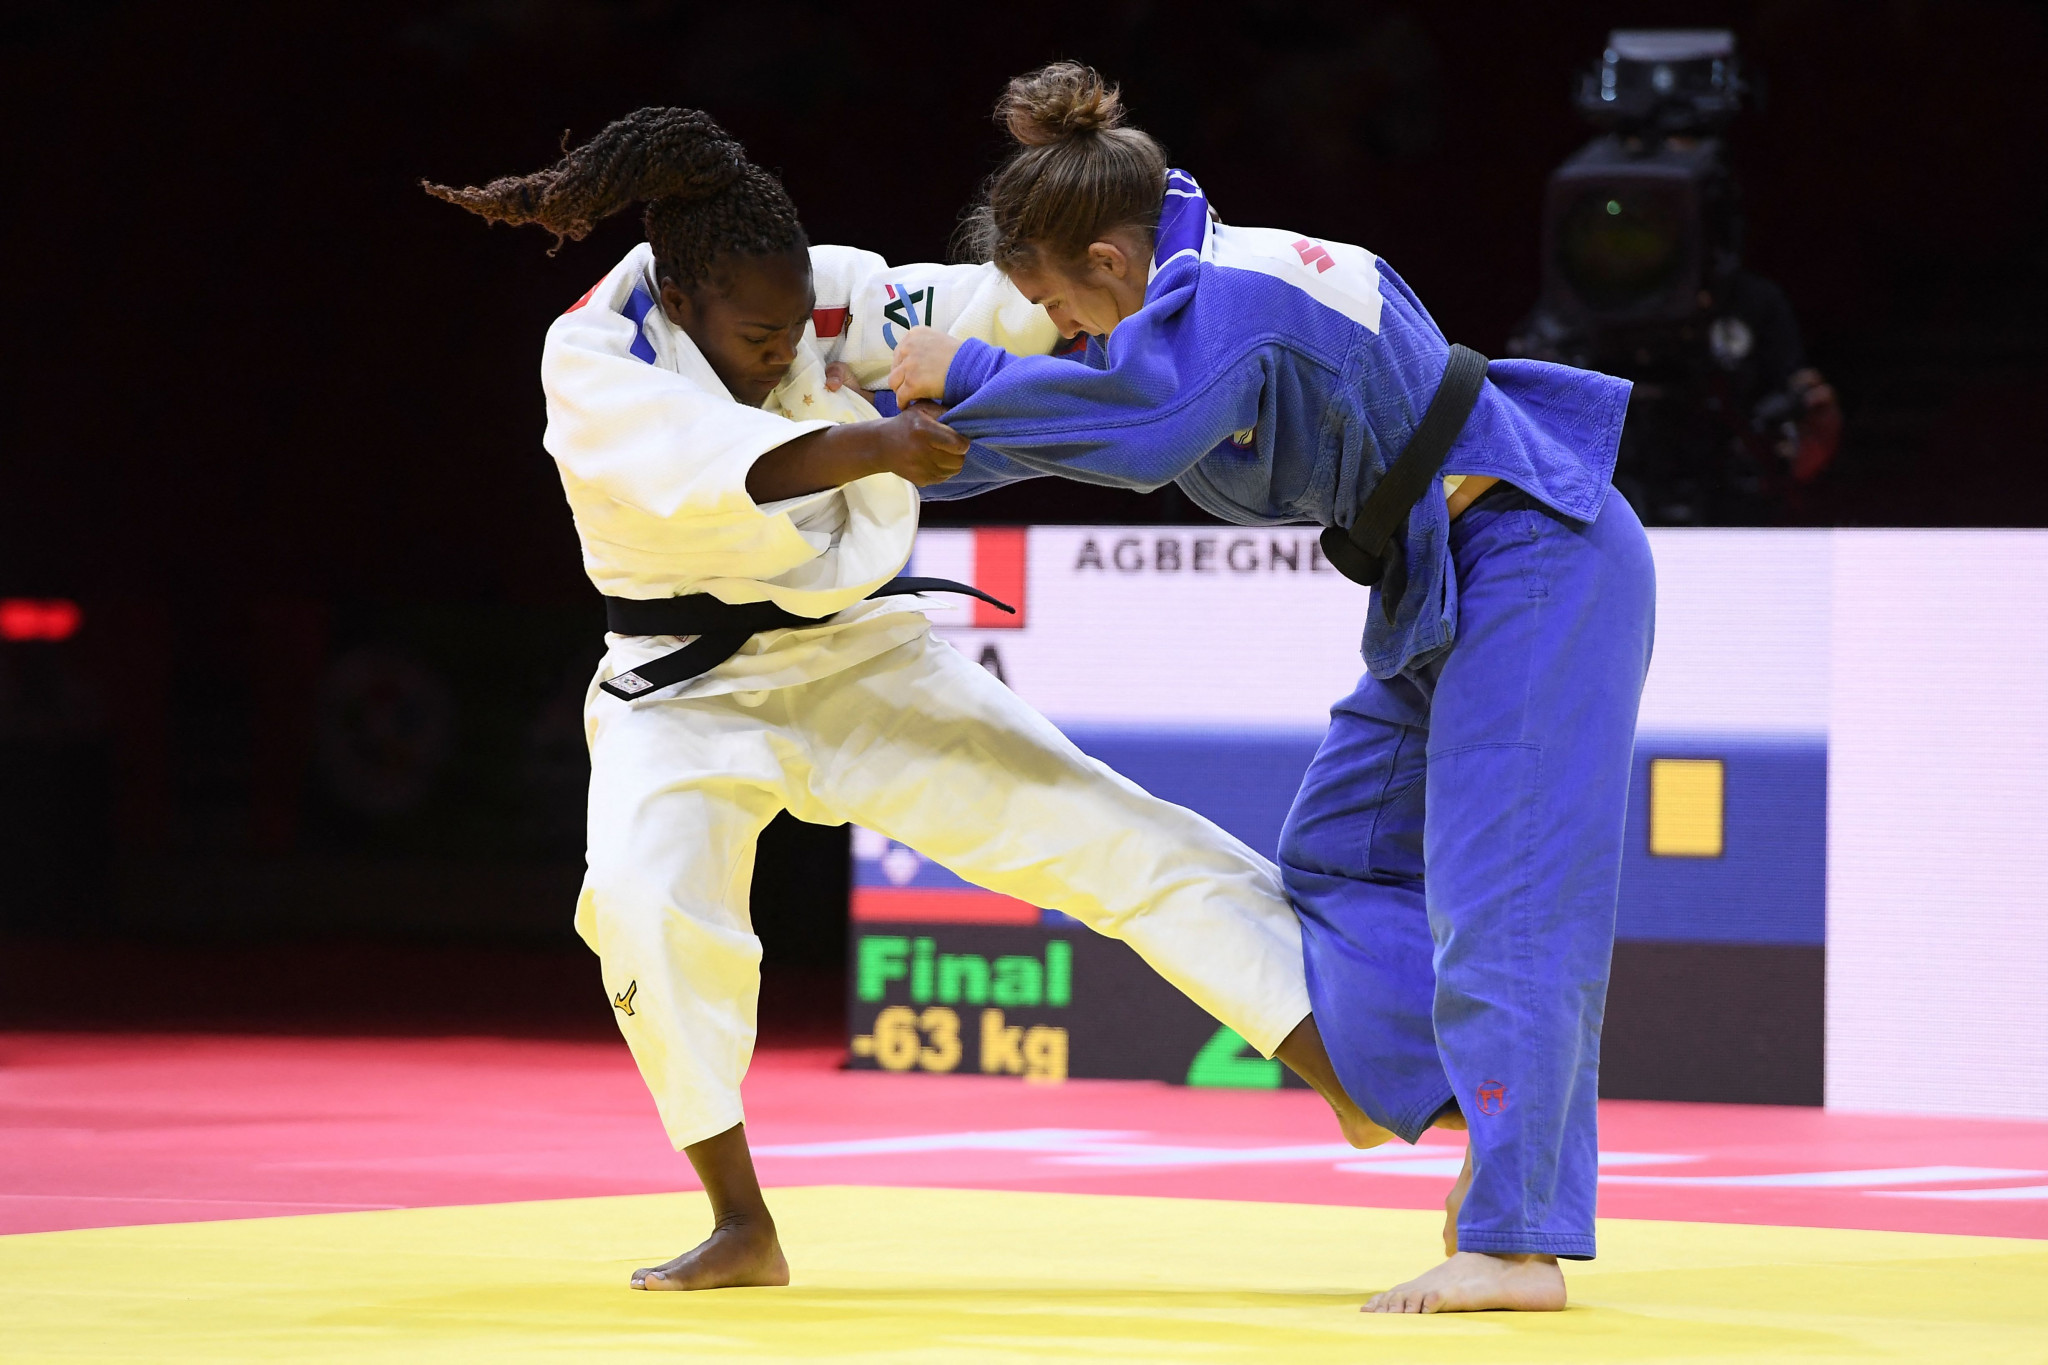 Clarisse Agbegnenou, in white, proved too strong for Andreja Leški in the women's under-63kg final at the World Championships ©Getty Images